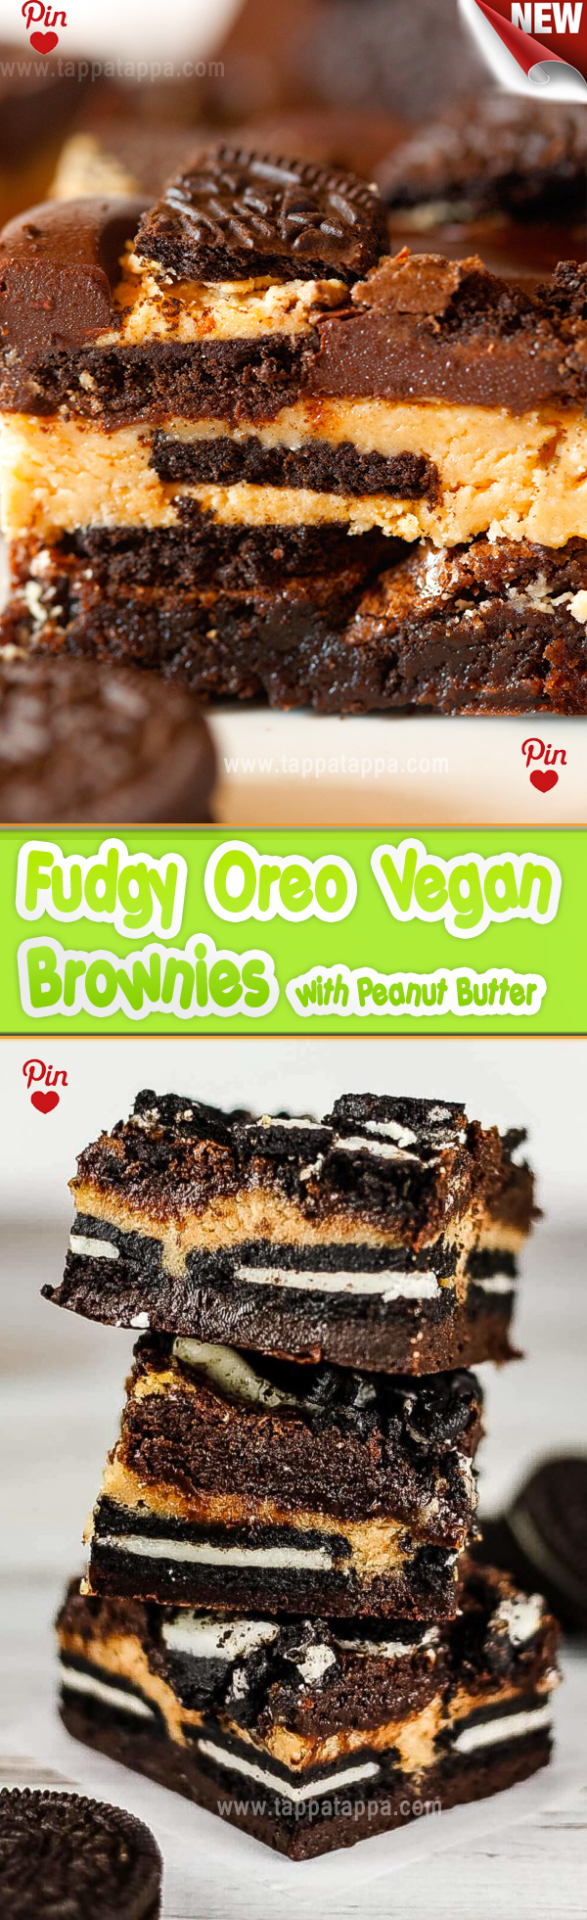 Fudgy Oreo Vegan Brownies with Peanut Butter . 2 15 oz cans black beans (3 cups)…